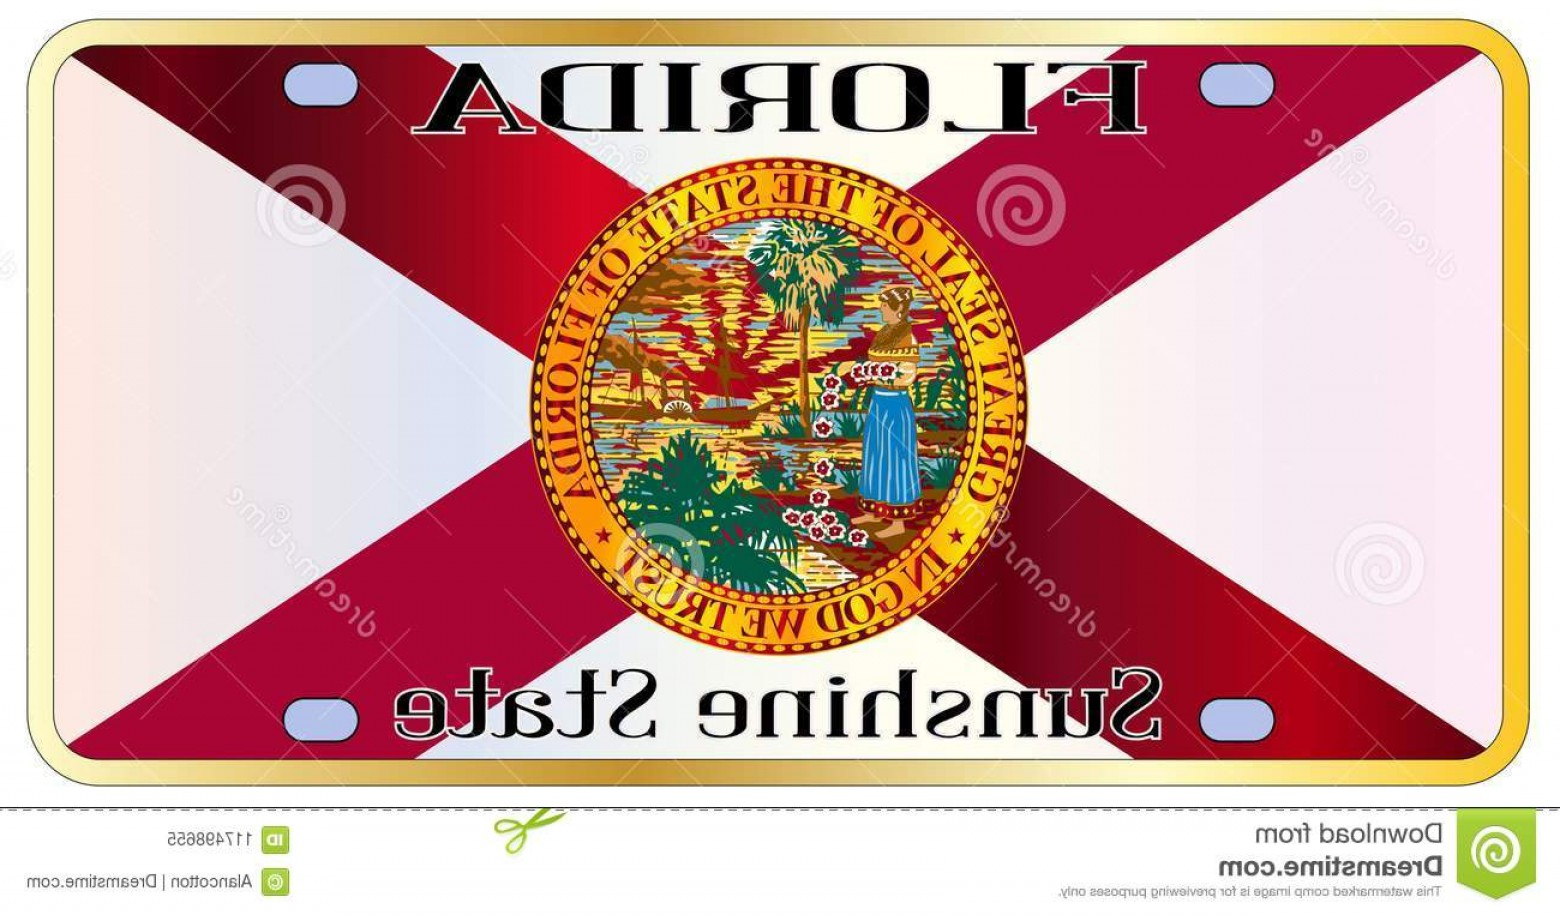 Florida License Plate Vector Art: Florida State Flag License Plate Florida State License Plate State Flag Over White Background Image